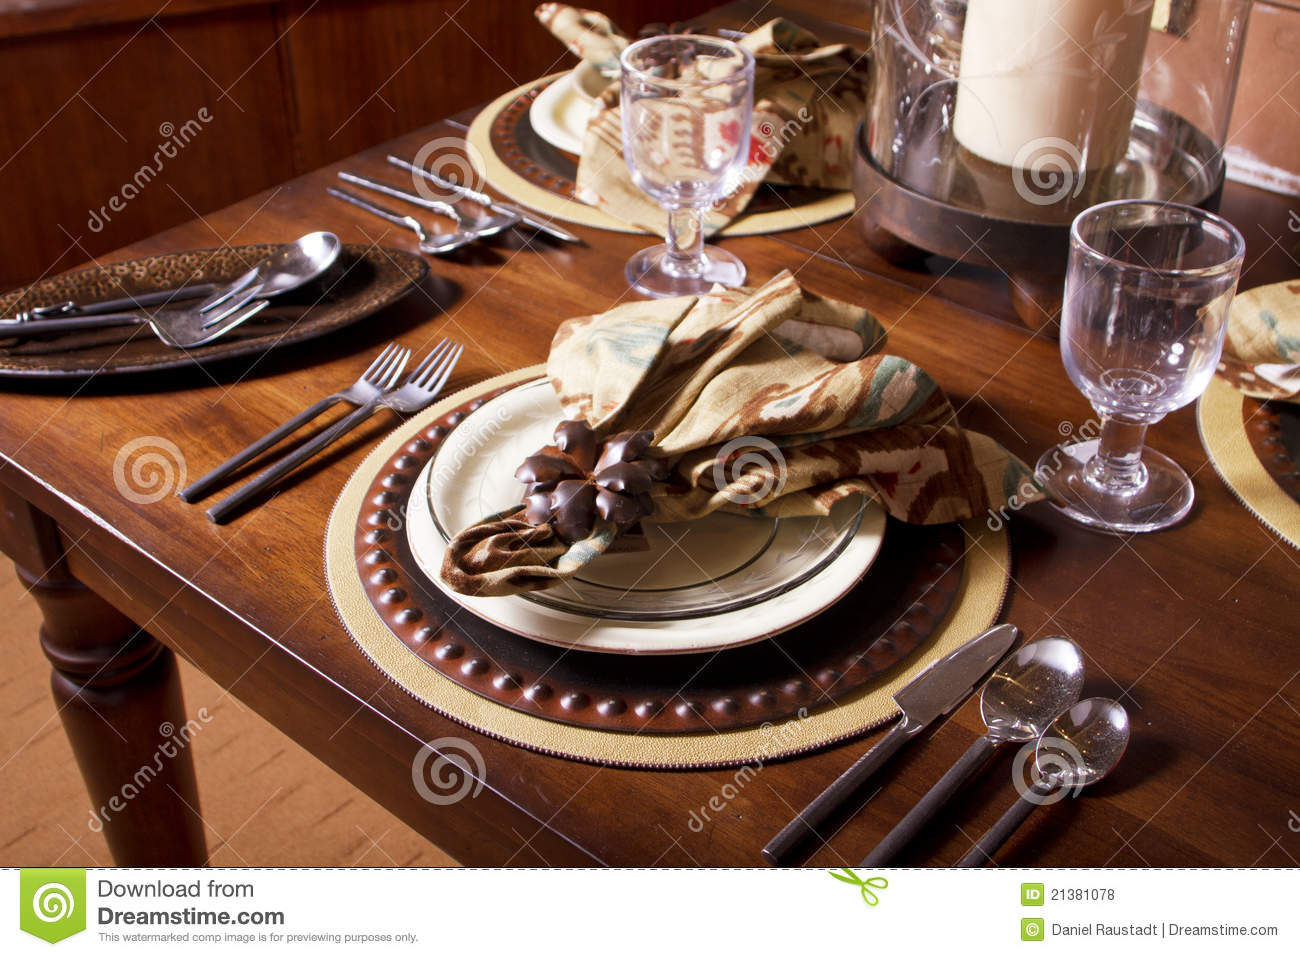 Elegant Table Place Setting & Elegant Table Place Setting Stock Photo - Image of china ...